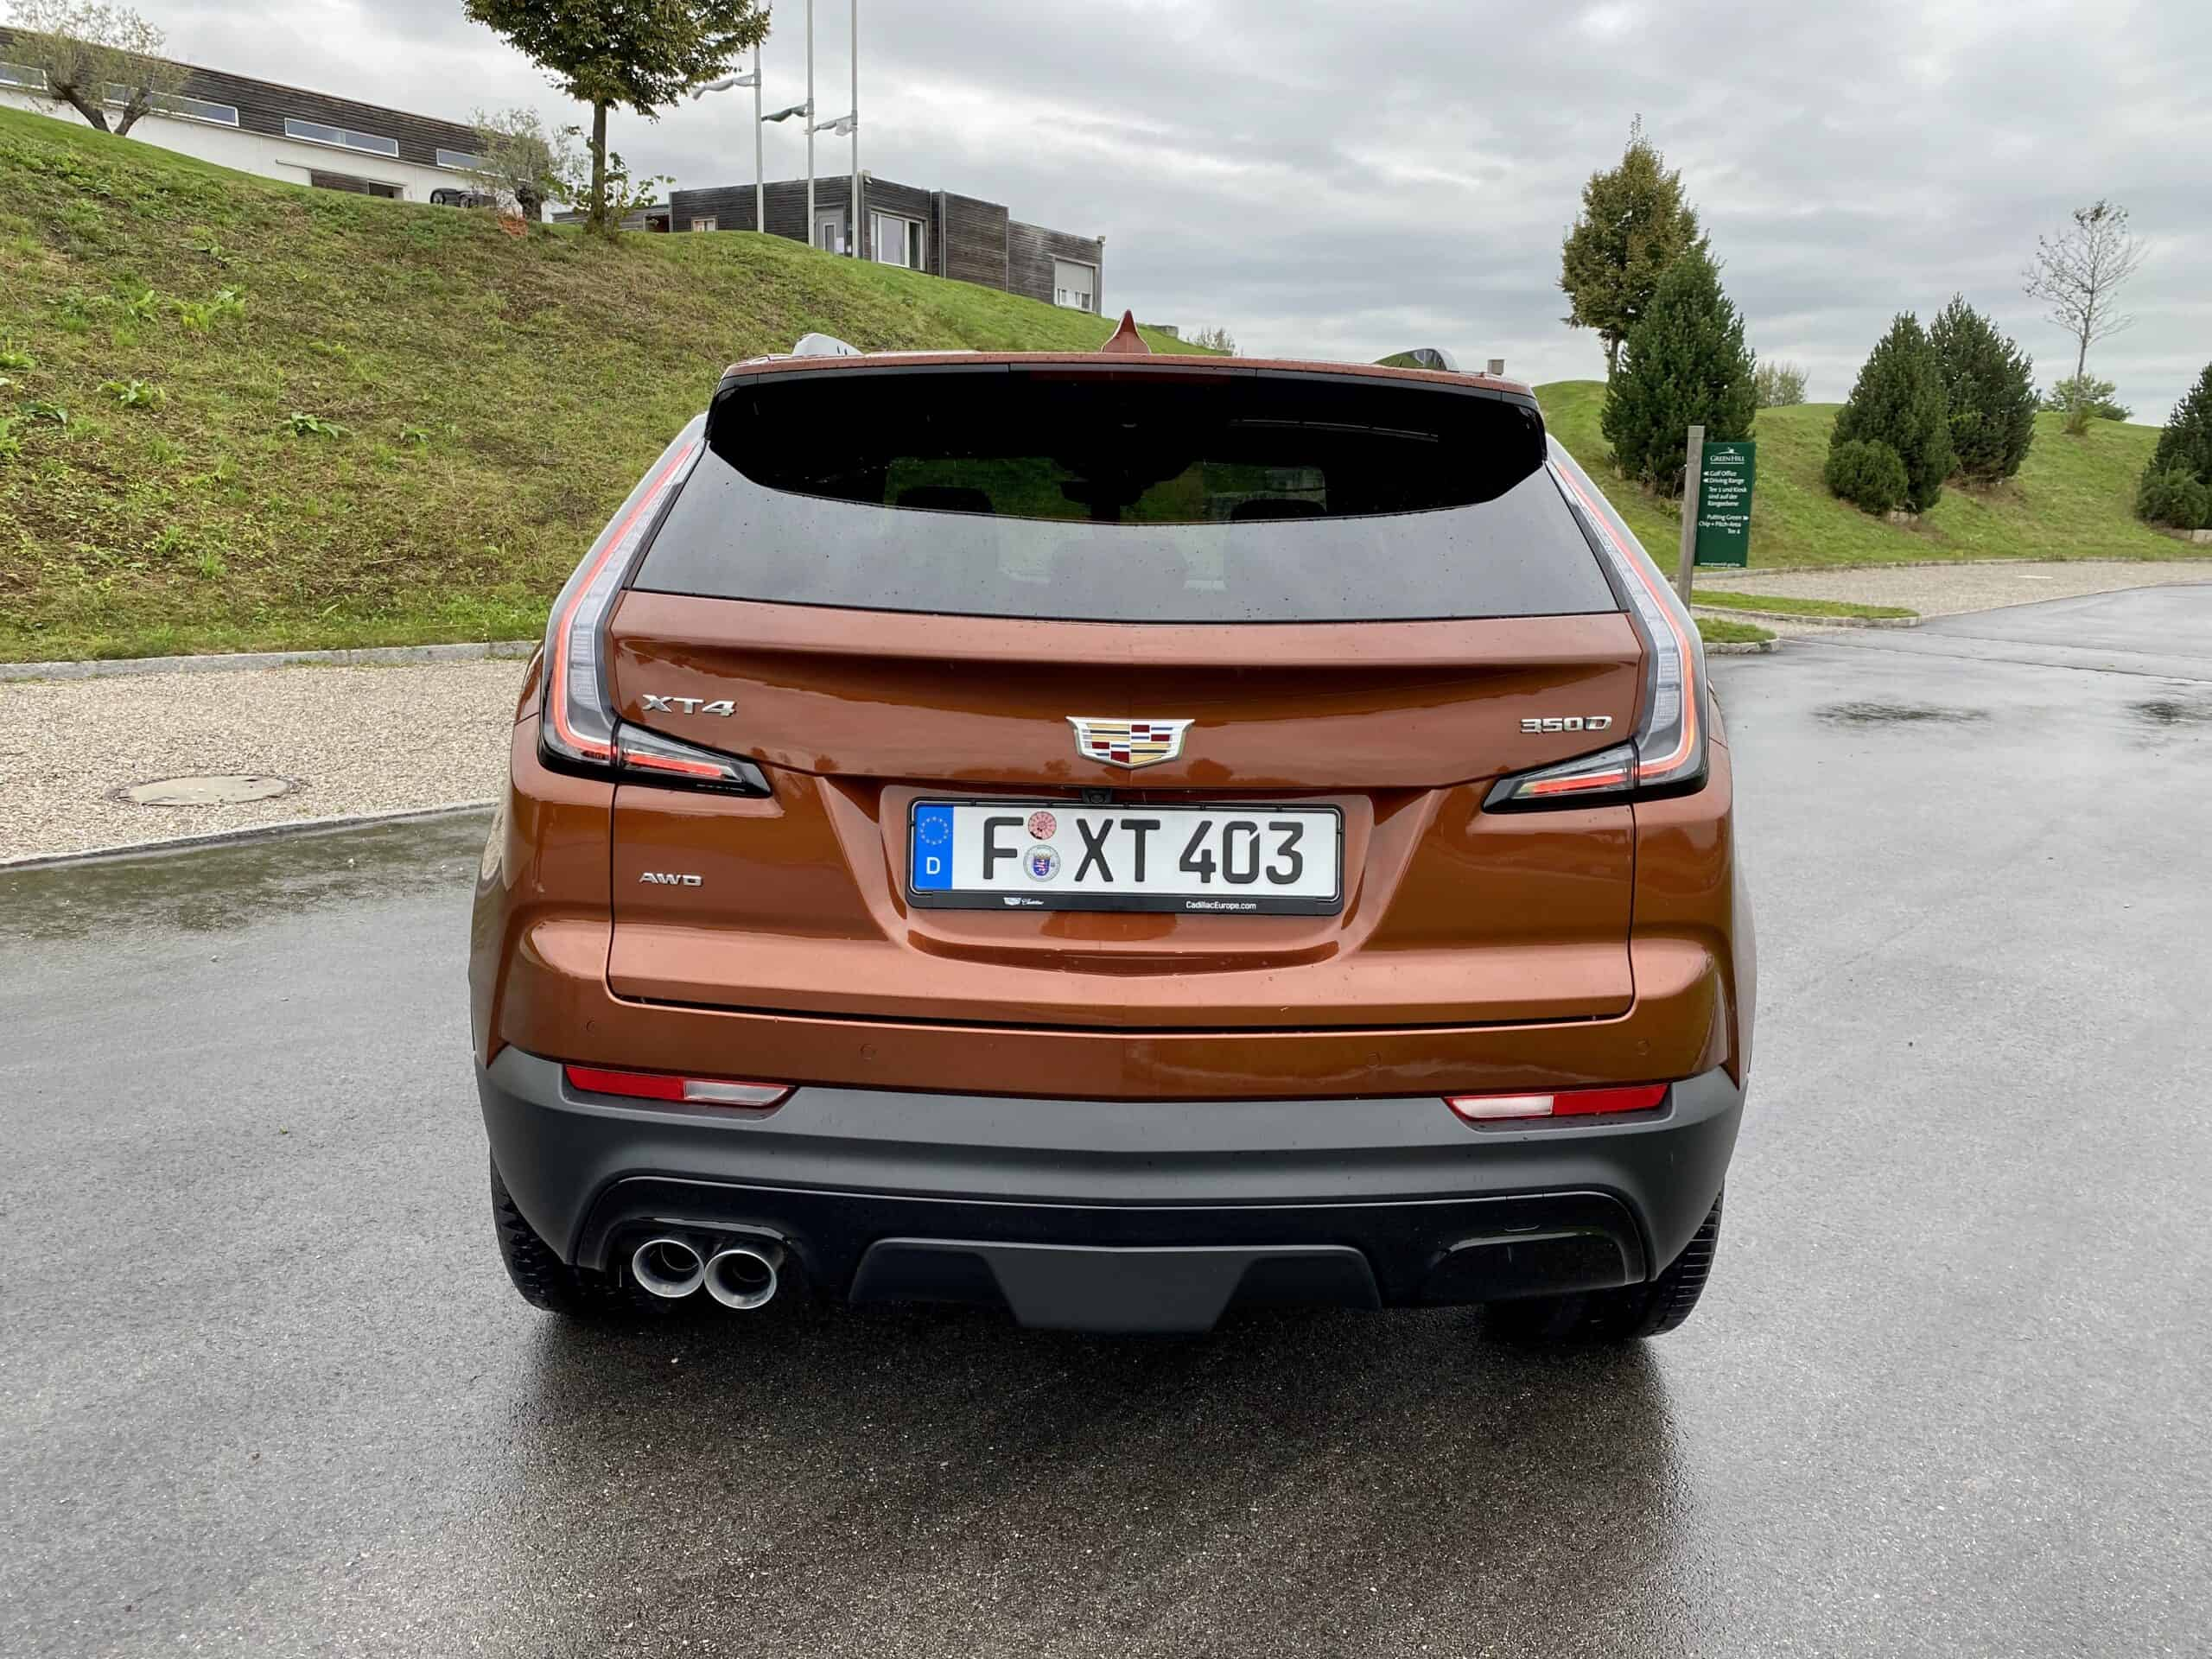 2021 Cadillac XT4 (174 PS) - Das letzte SUV-Unicorn made in USA? - Fahrbericht | Review | Test